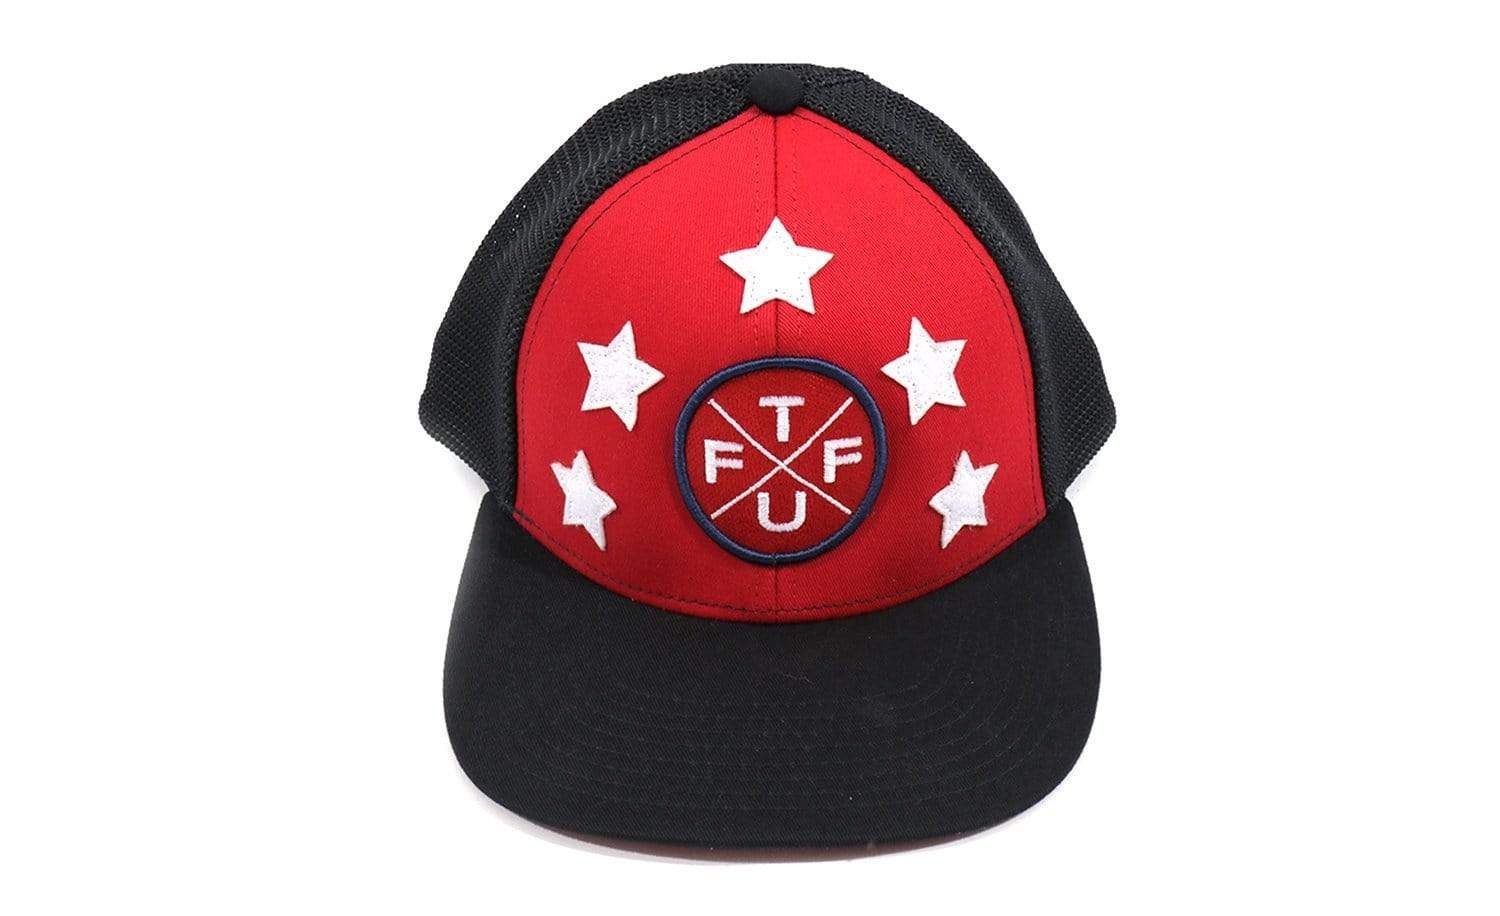 TUFF 5-Star Trucker Hat - Blue/Red Blue/Red TuffWraps.com